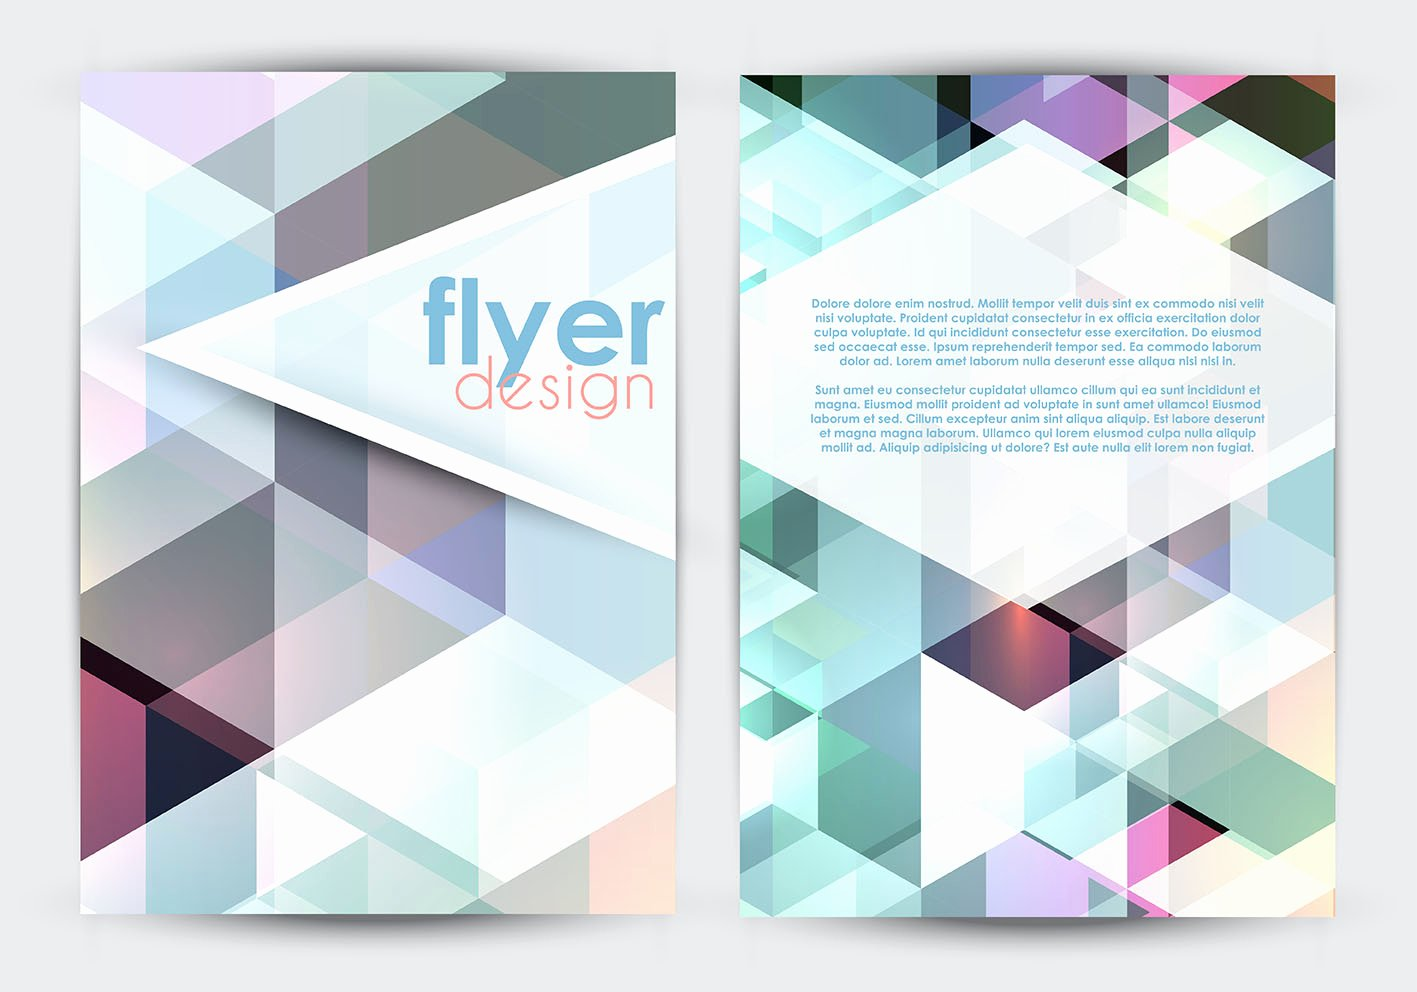 Double Sided Brochure Template Luxury Double Sided Flyer Design Download Free Vector Art